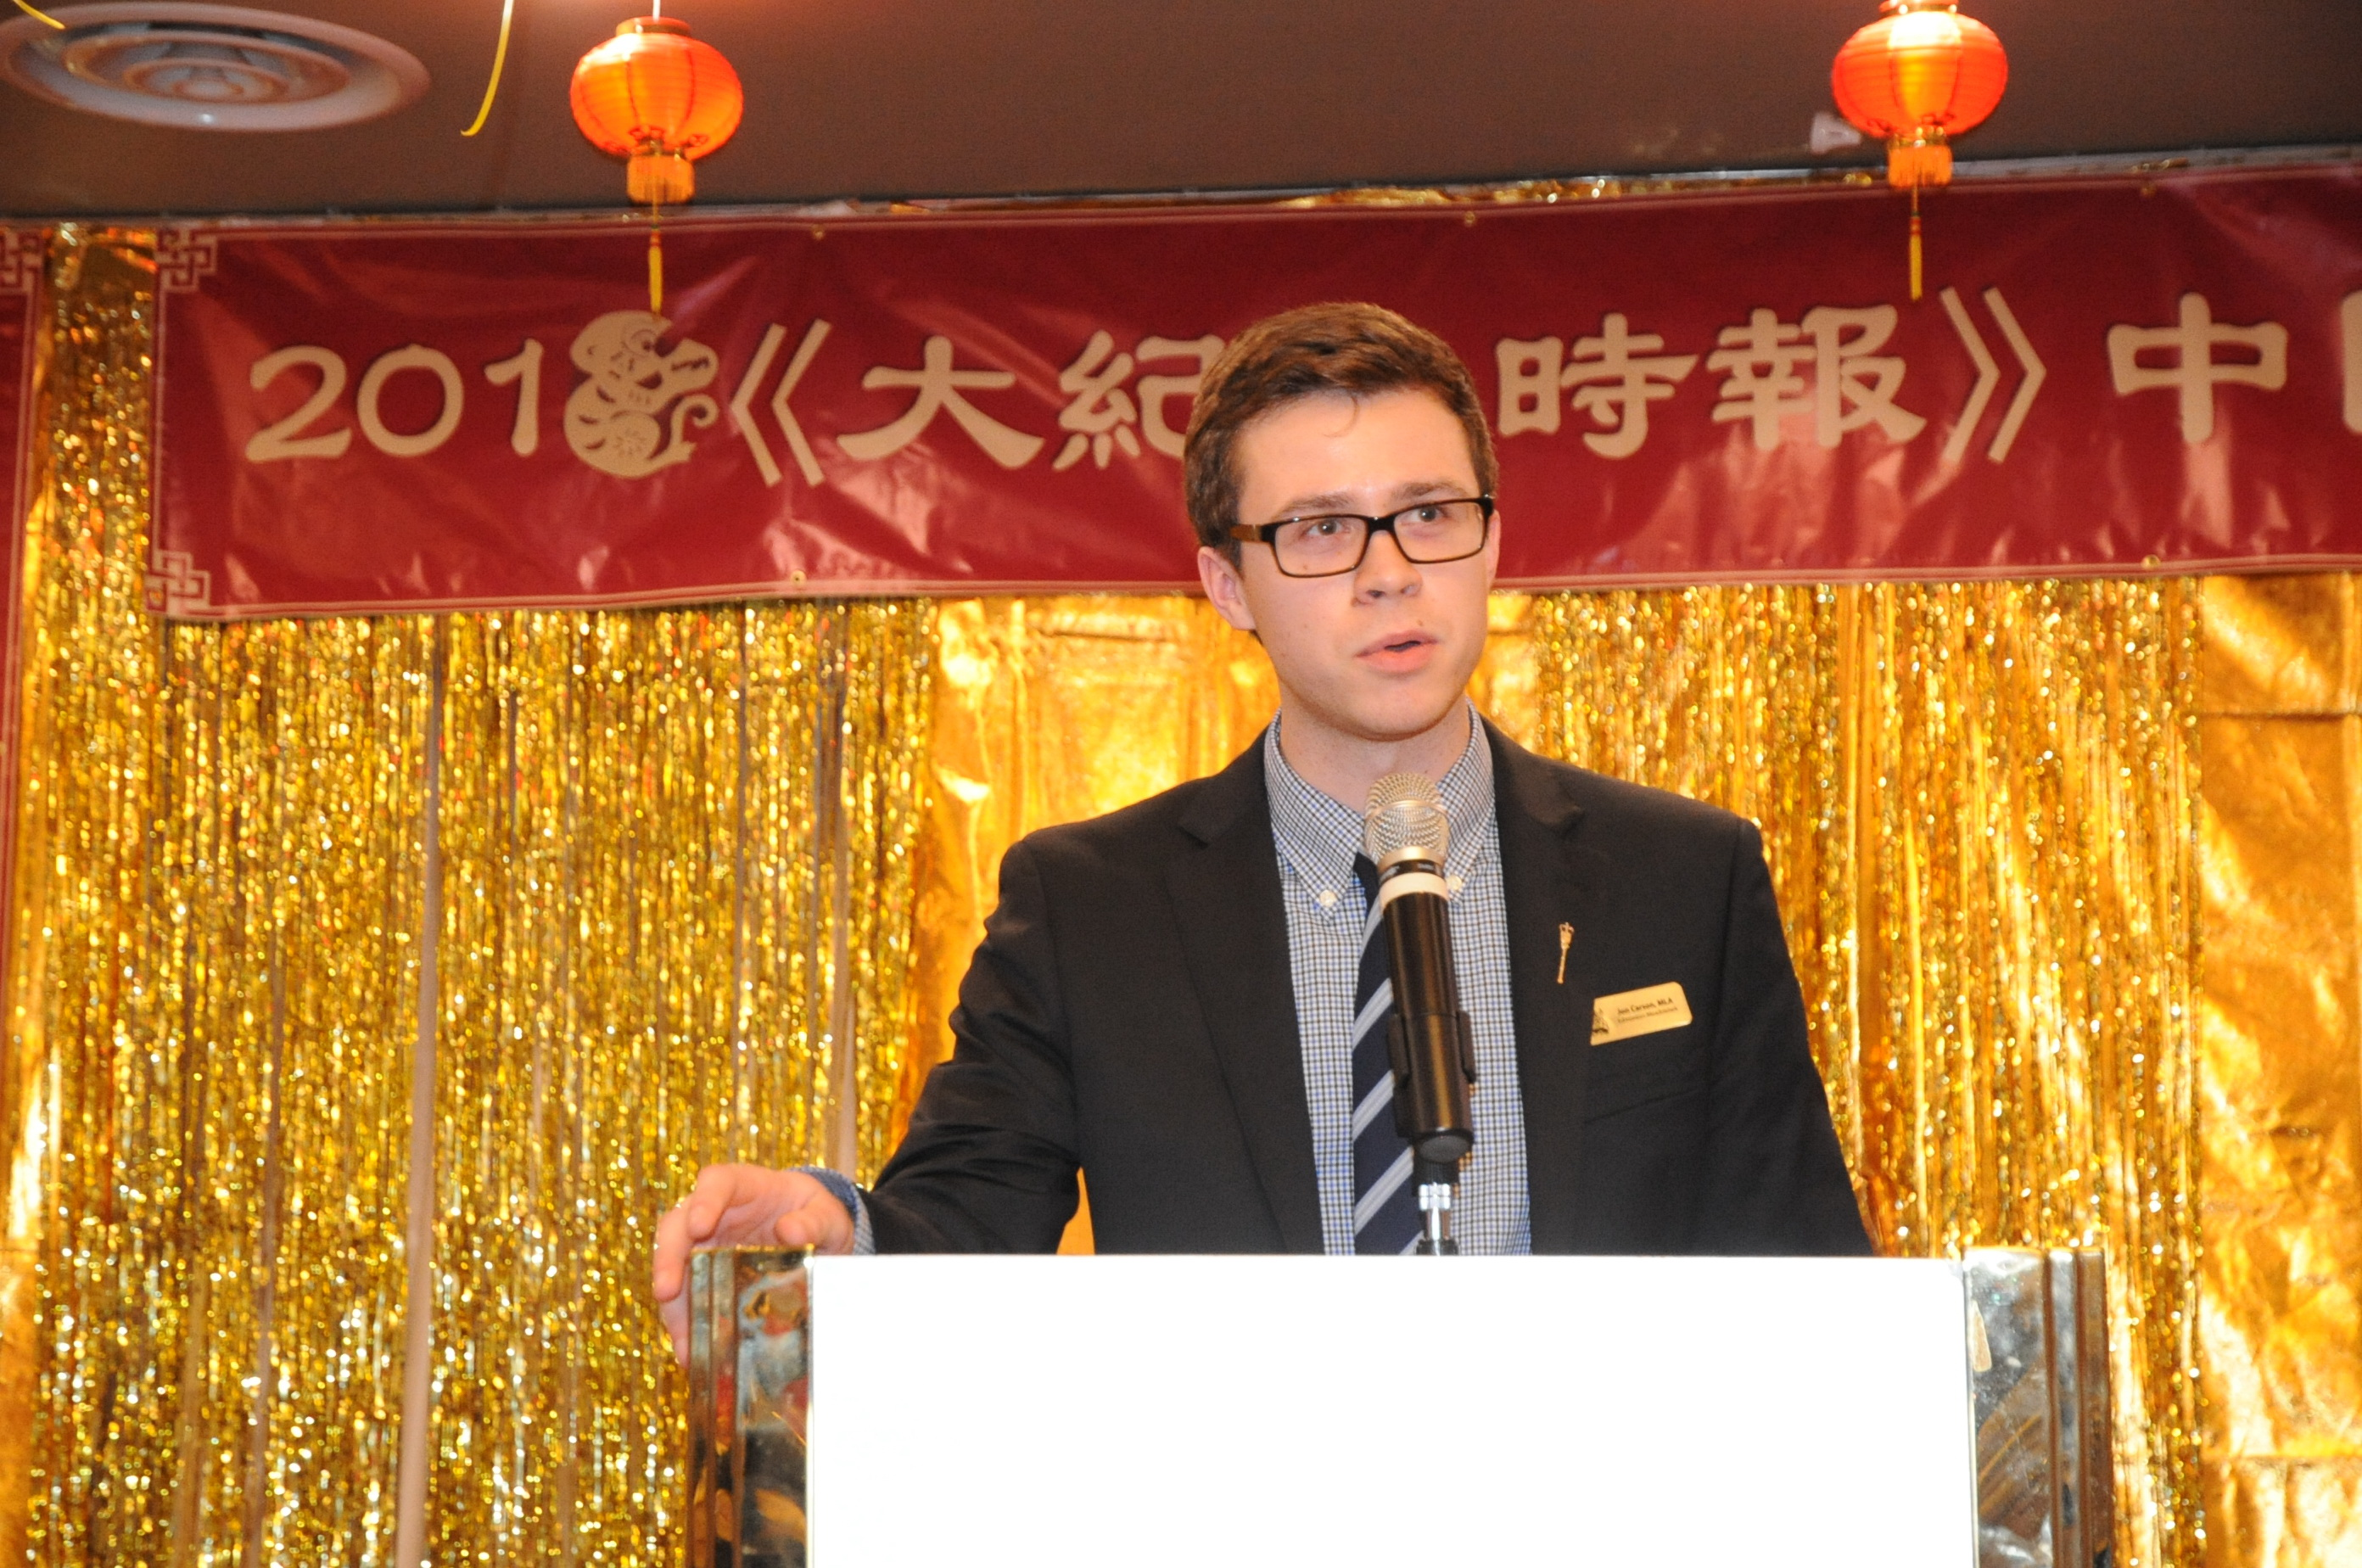 Jon Carson, MLA for Edmonton-Meadowlark, delivers New Year greetings on behalf of Alberta Premier Rachel Notley and the Government of Alberta at the Epoch Times Chinese New Year celebration event in Edmonton on Feb. 6, 2016. (Jerry Wu/Epoch Times)